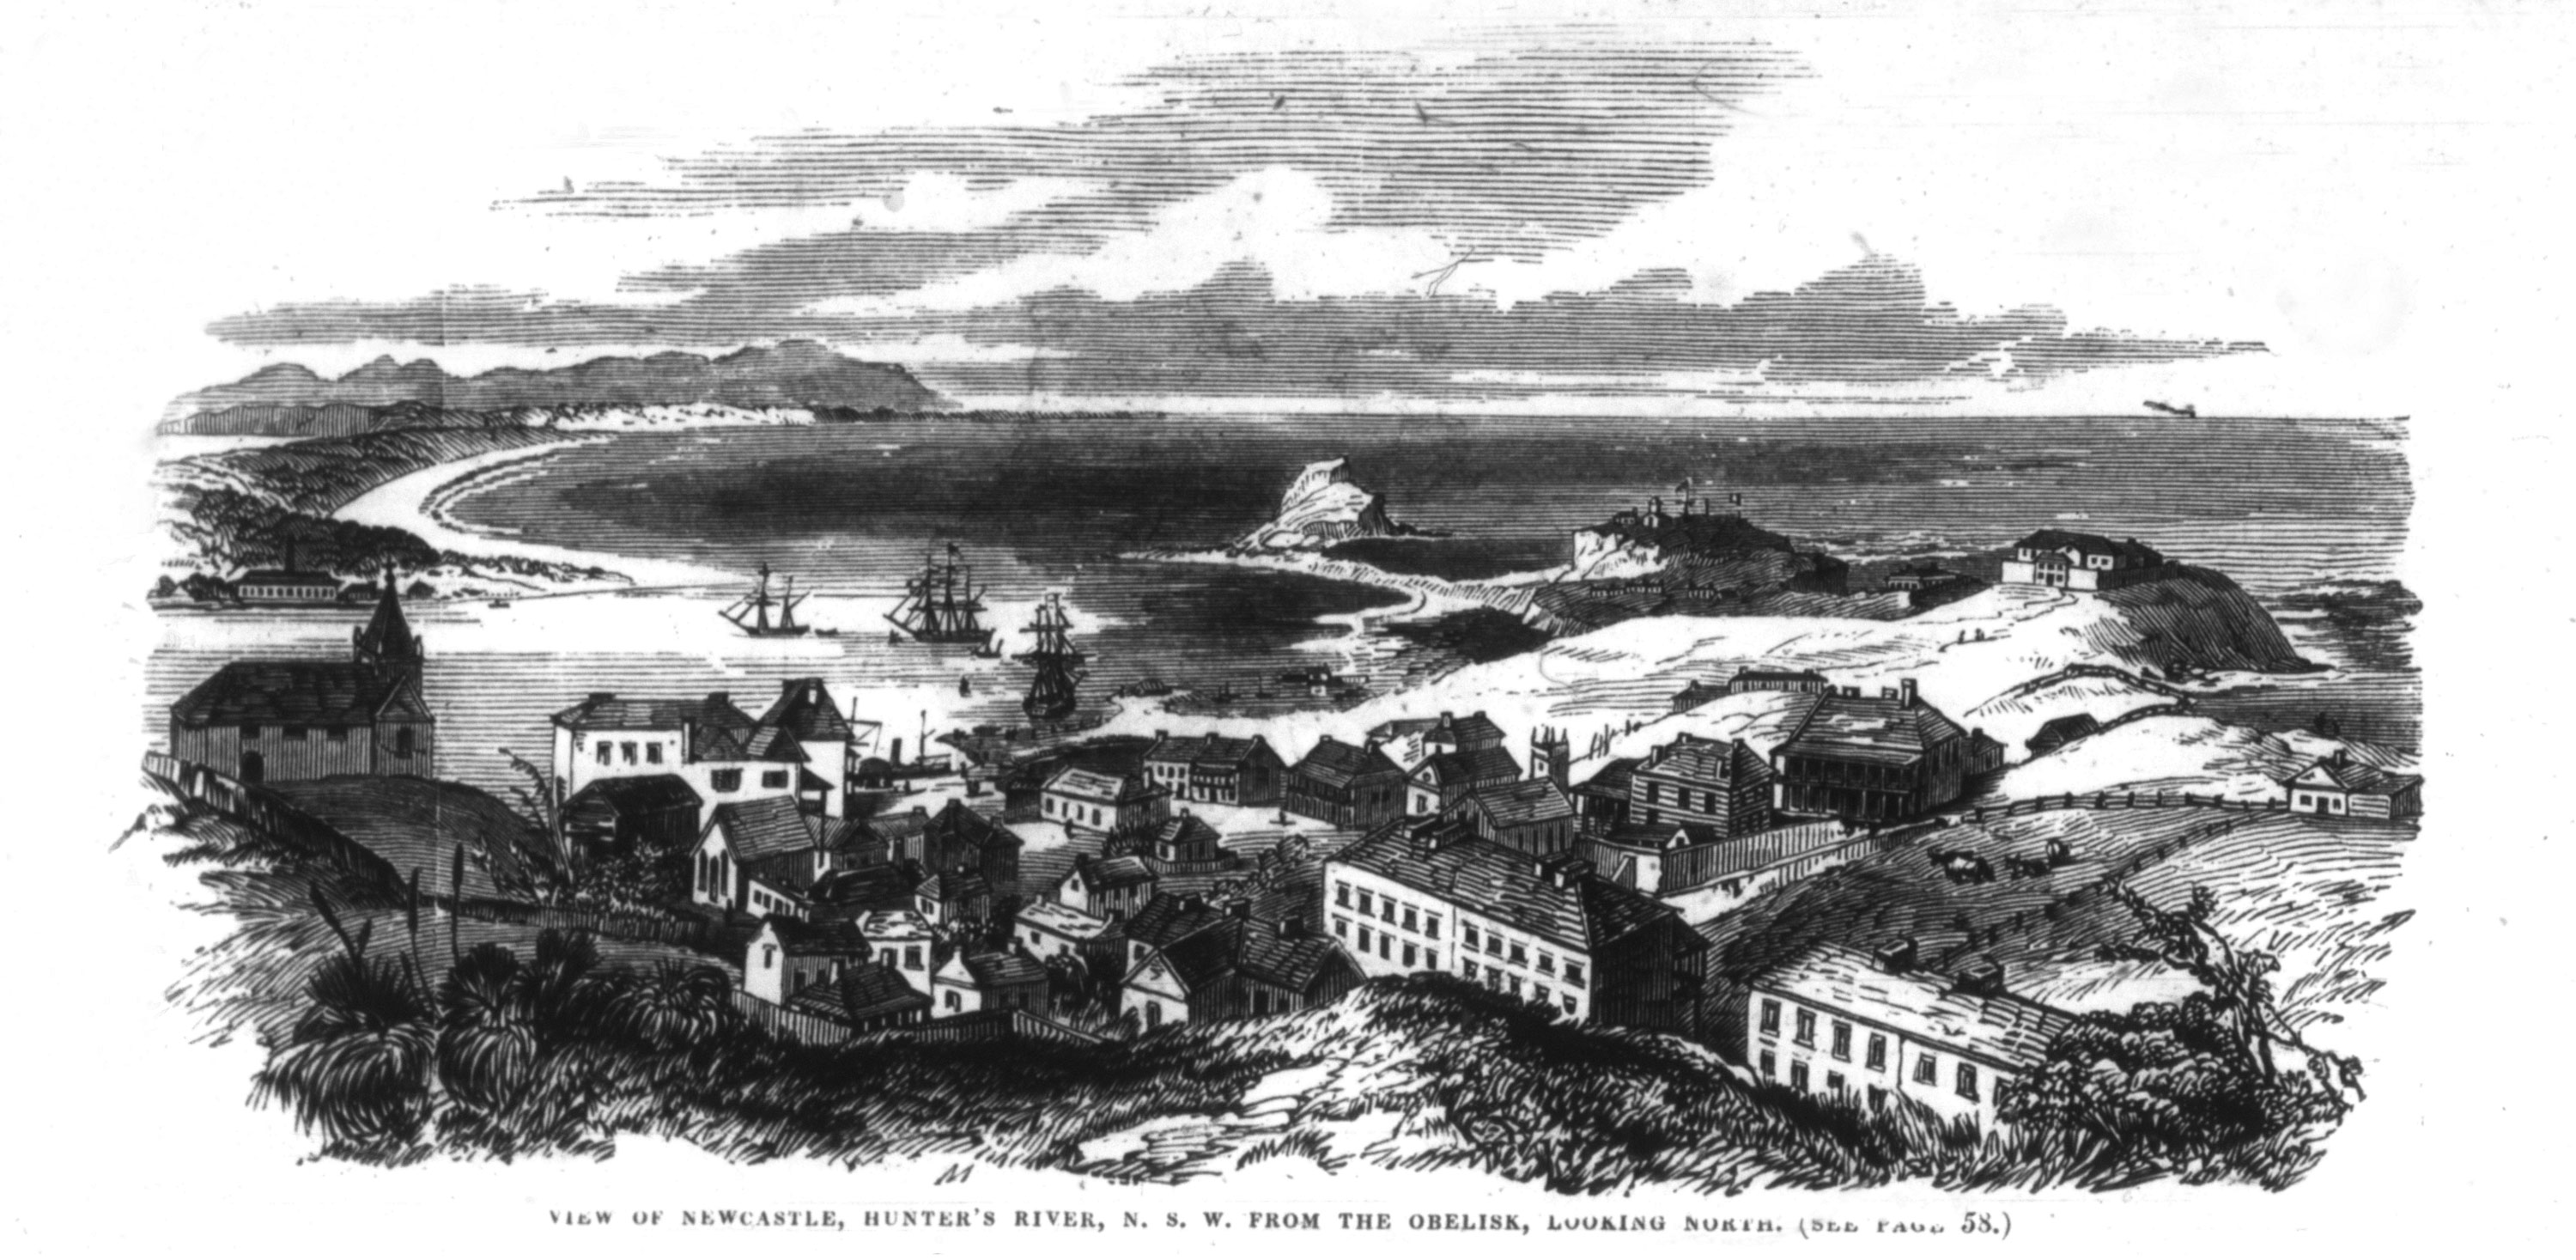 Newcastle (From The Illustrated Sydney News 26th November 1853 p.60)